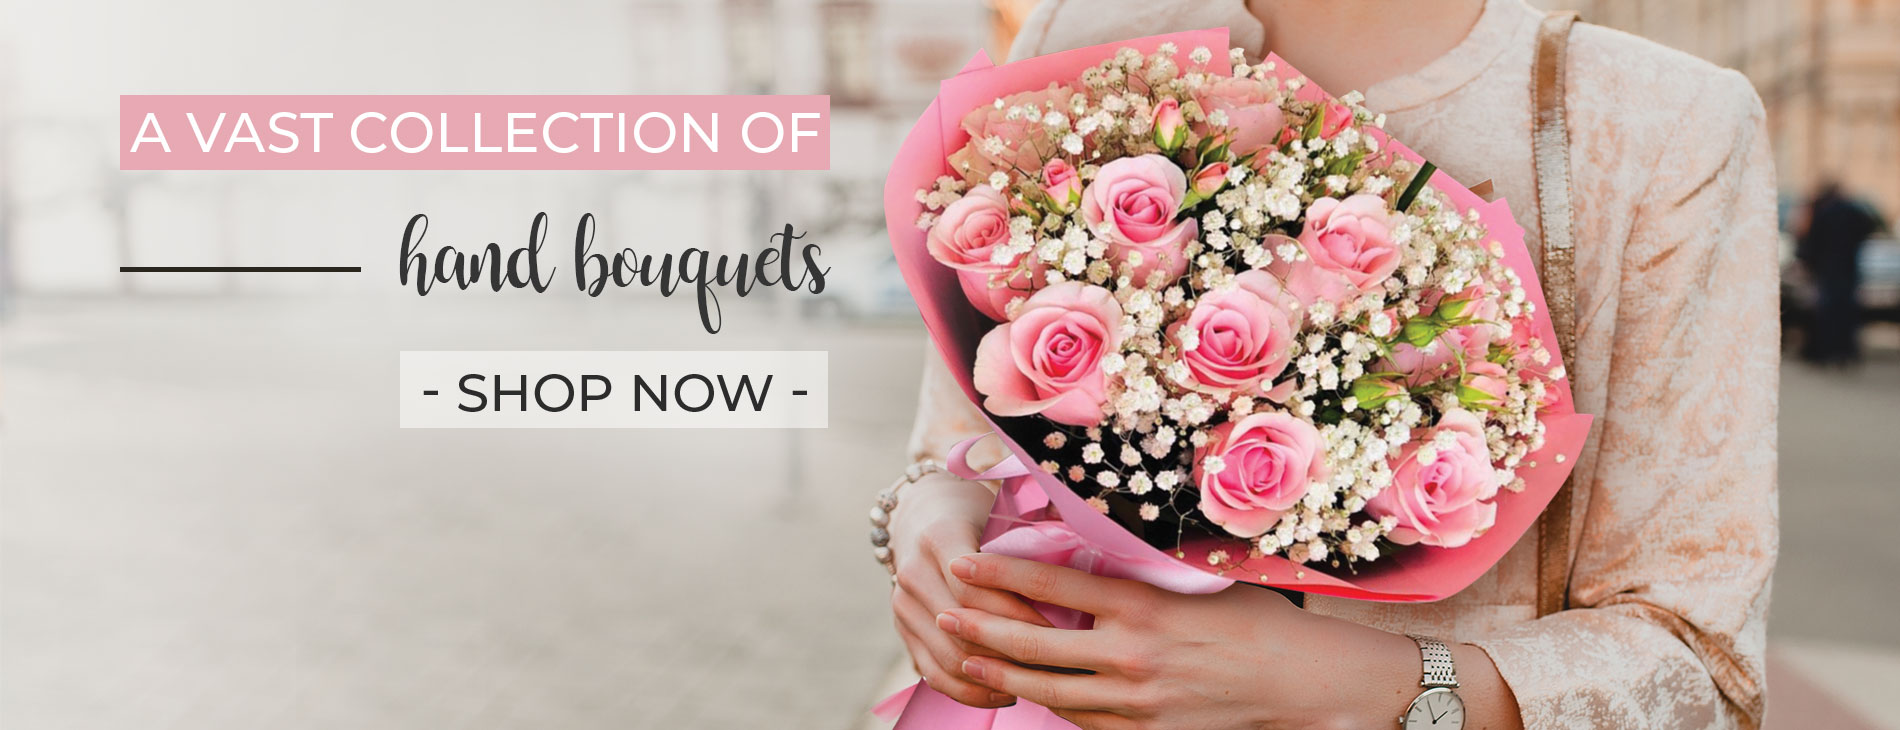 Vast Collection and HAND BOUQUETS